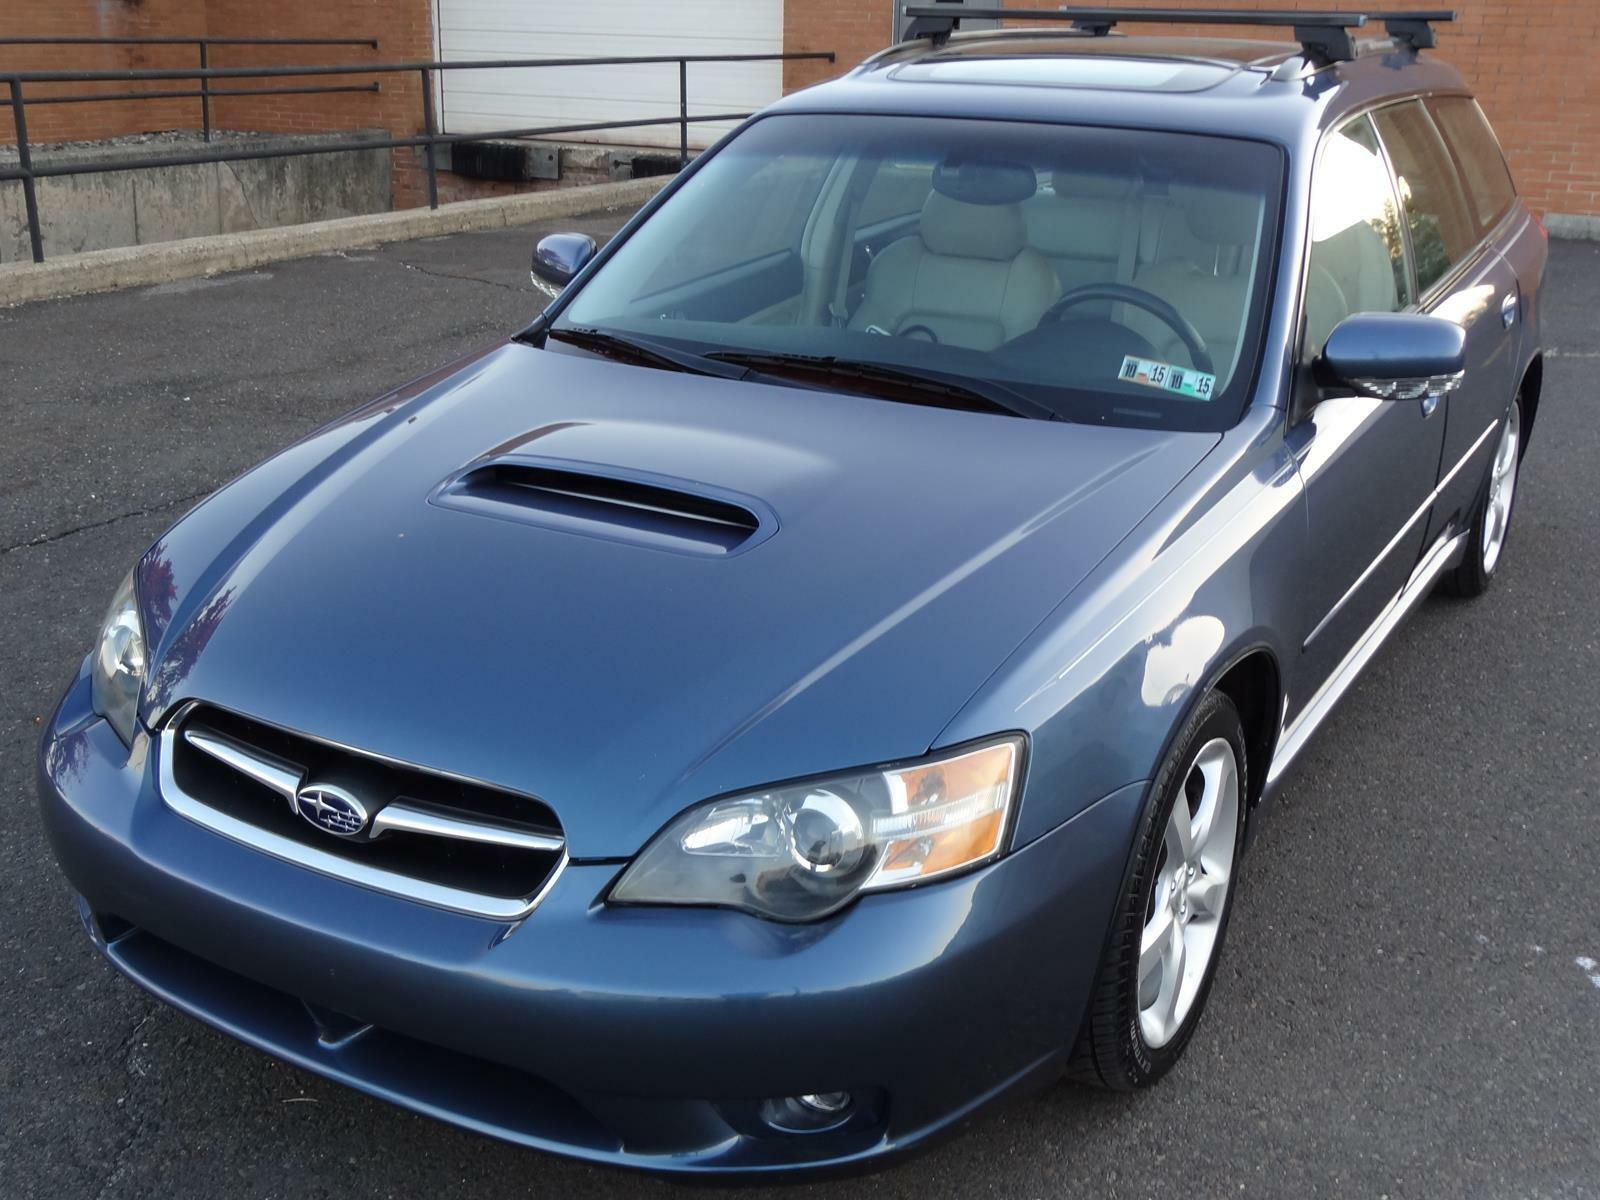 subaru legacy wagon 2 5 gt turbo limited awd 1 owner low miles 8 picclick. Black Bedroom Furniture Sets. Home Design Ideas